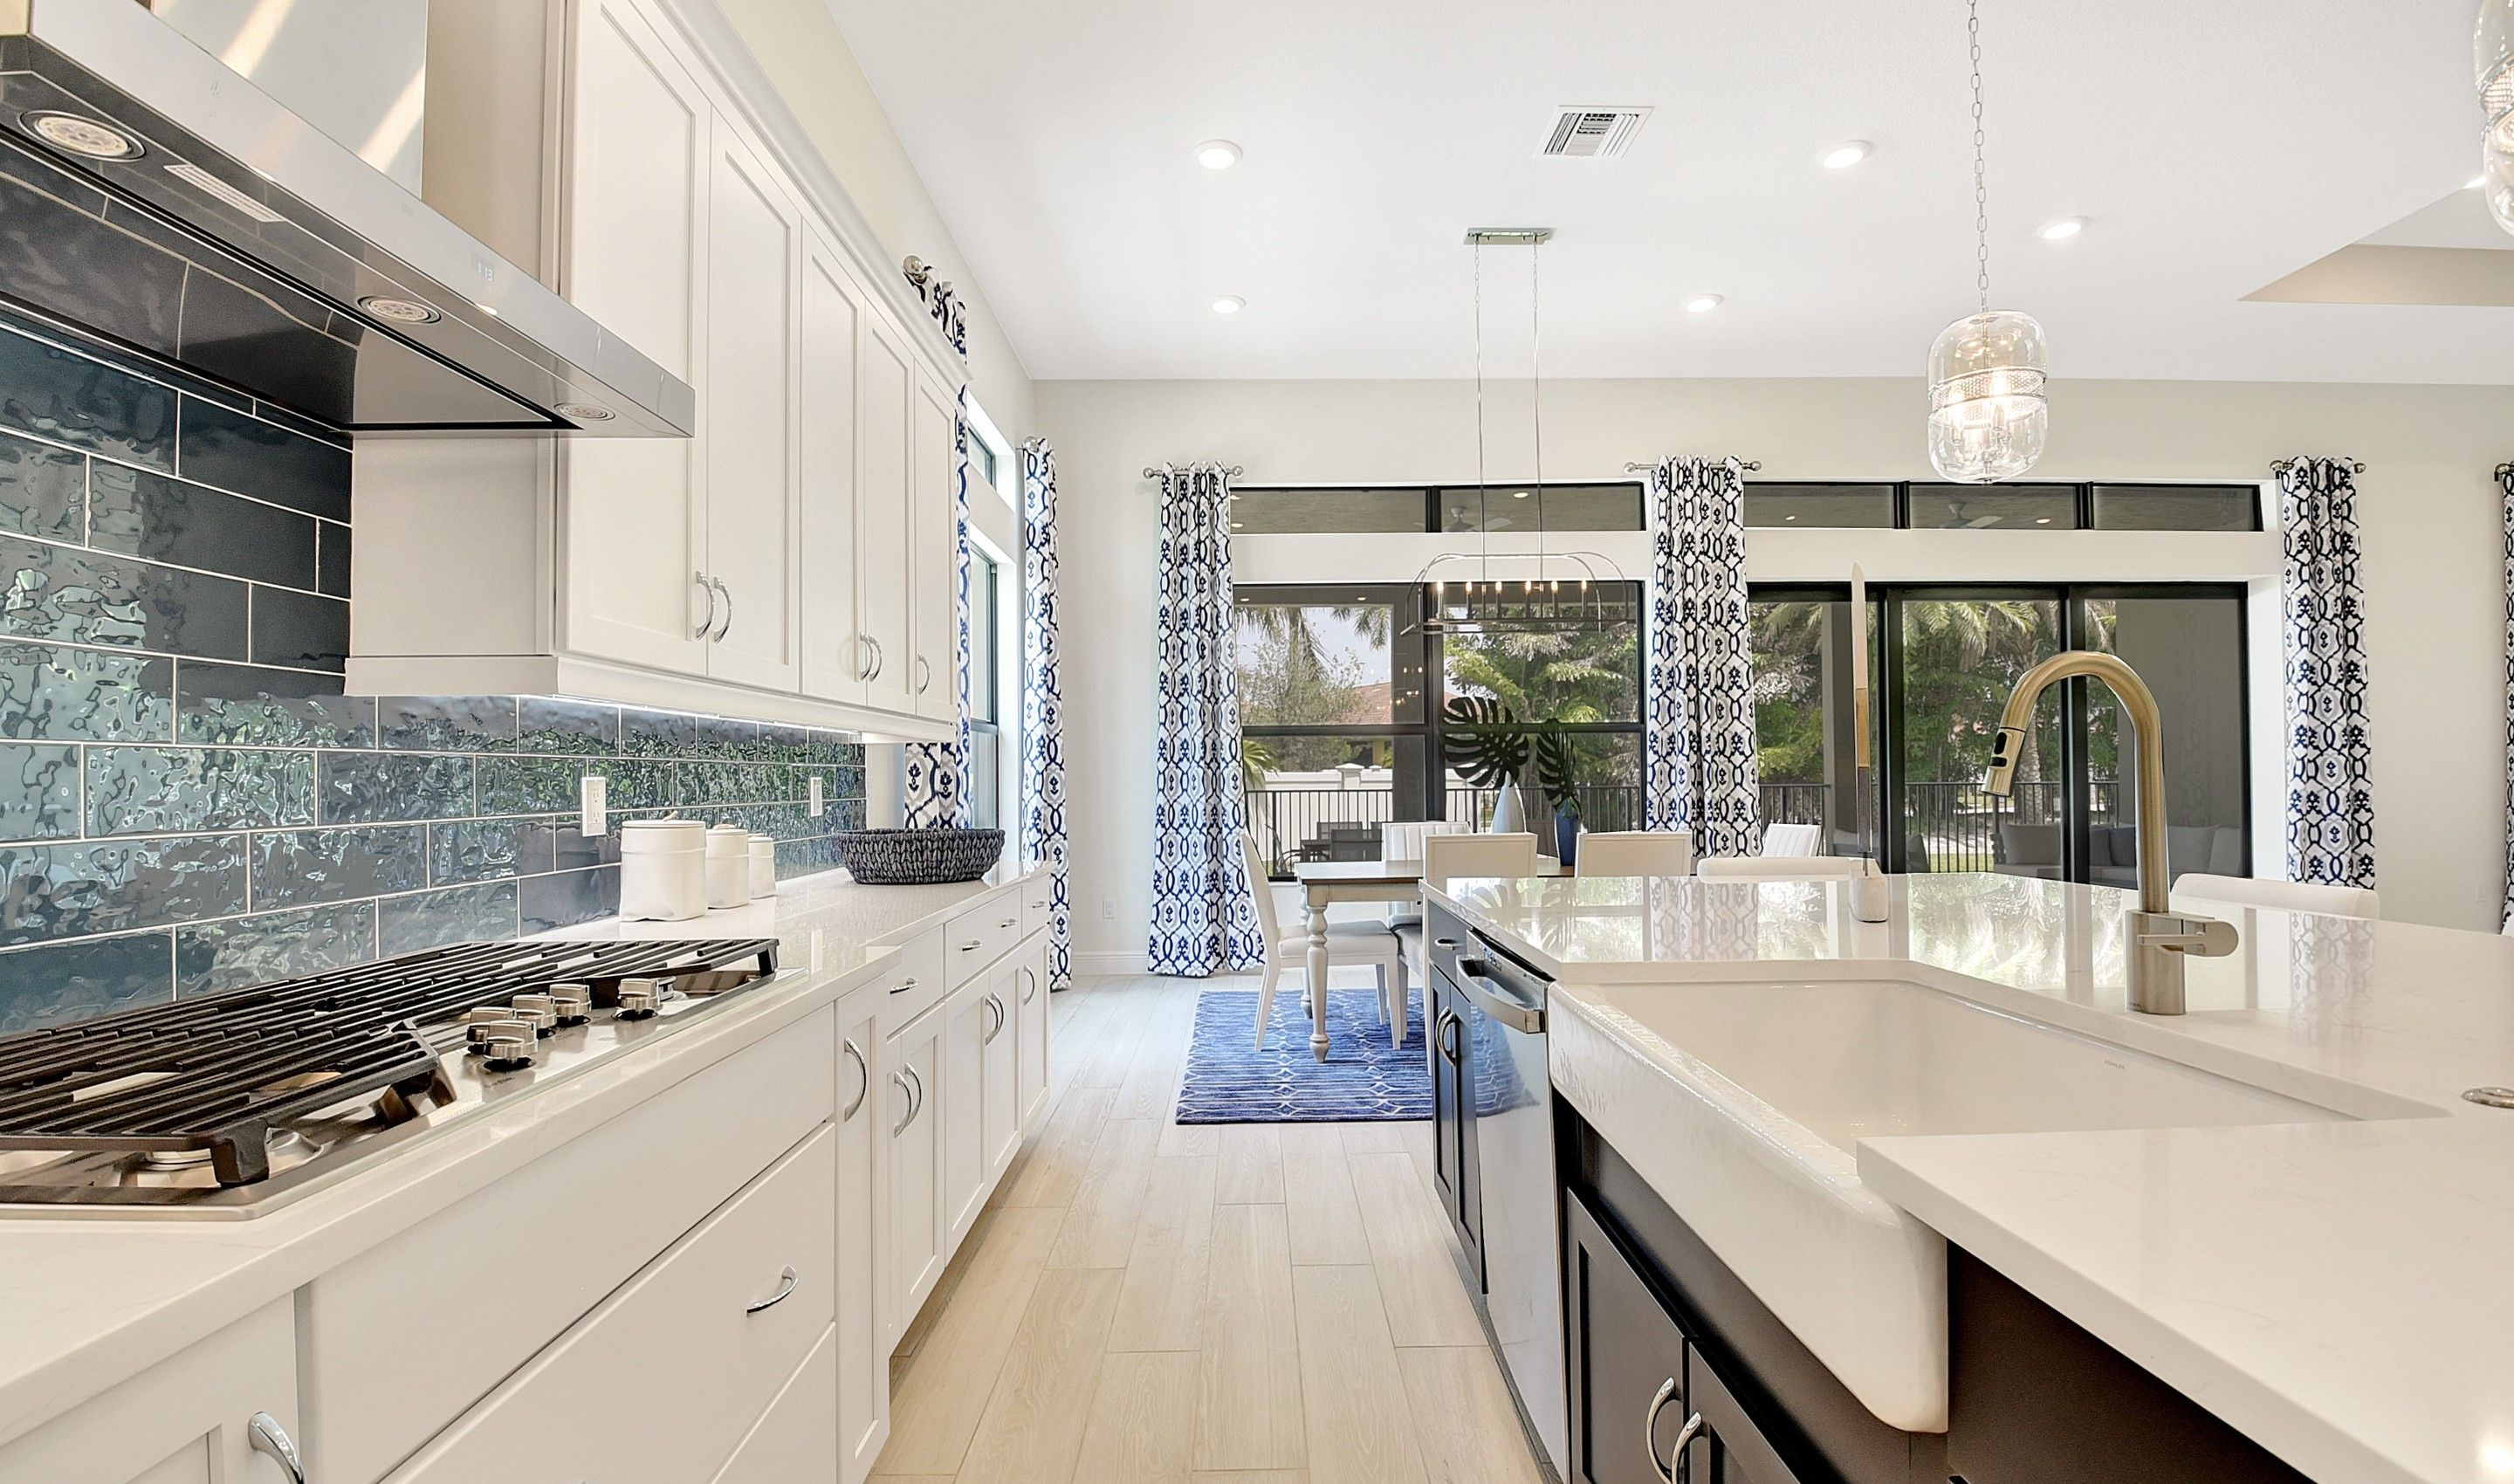 Kitchen featured in the Soleil By K. Hovnanian's® Four Seasons in Broward County-Ft. Lauderdale, FL